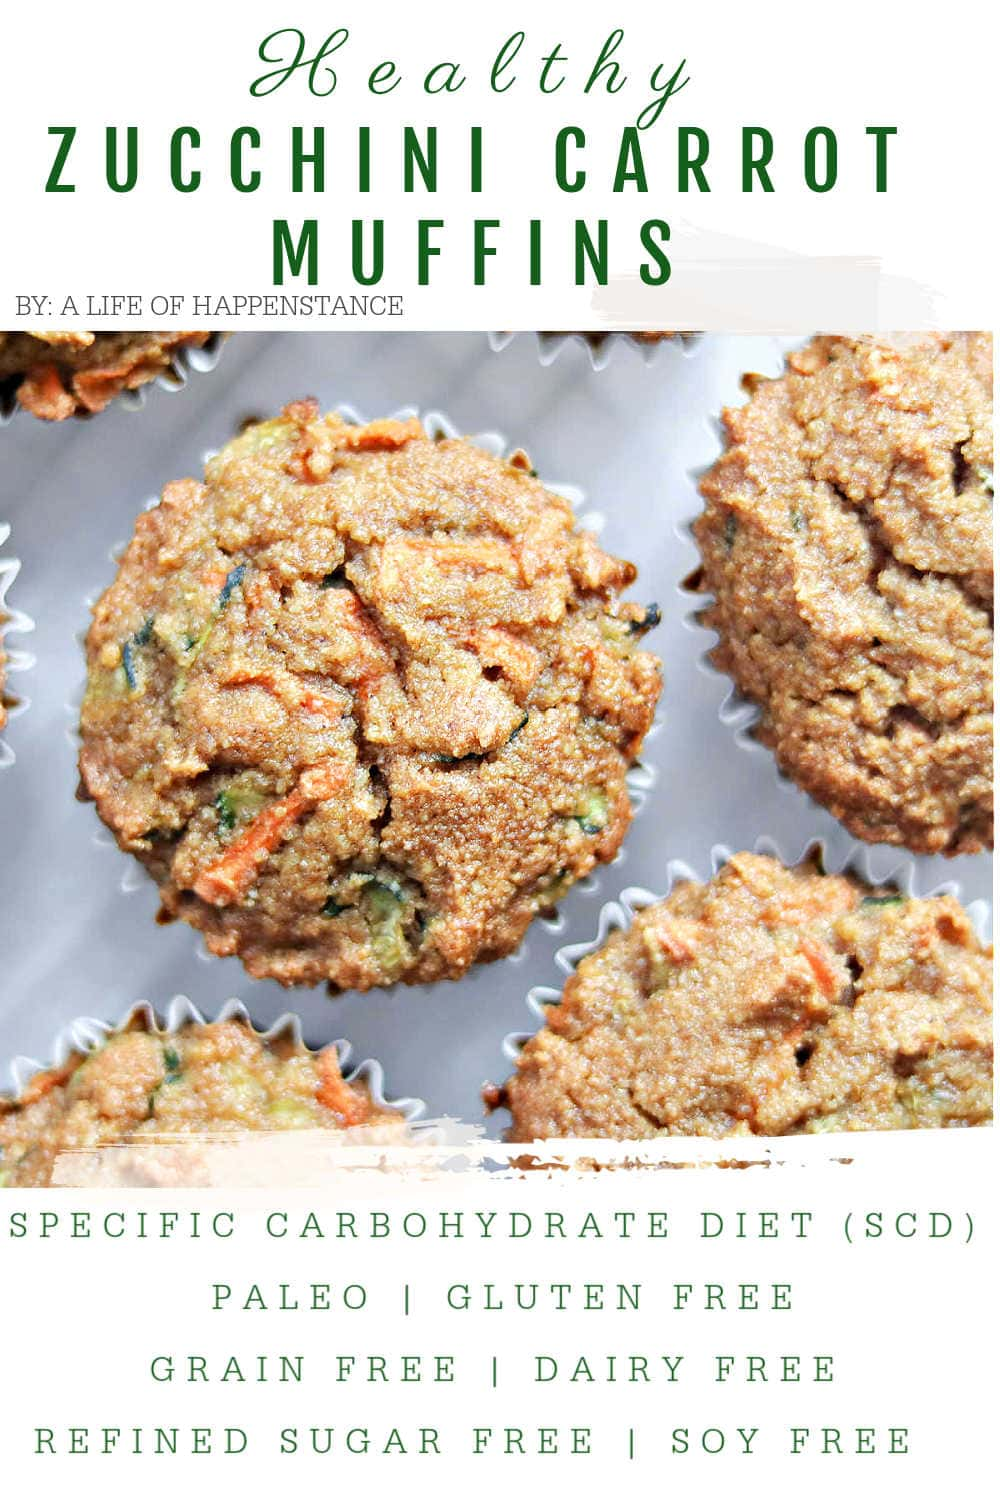 These healthy zucchini carrot muffins are made with almond flour, packed with veggies, and very lightly sweetened with honey. They're perfect for a snack or quick breakfast and are SCD, paleo, gluten free, grain free, dairy free, and refined sugar free.